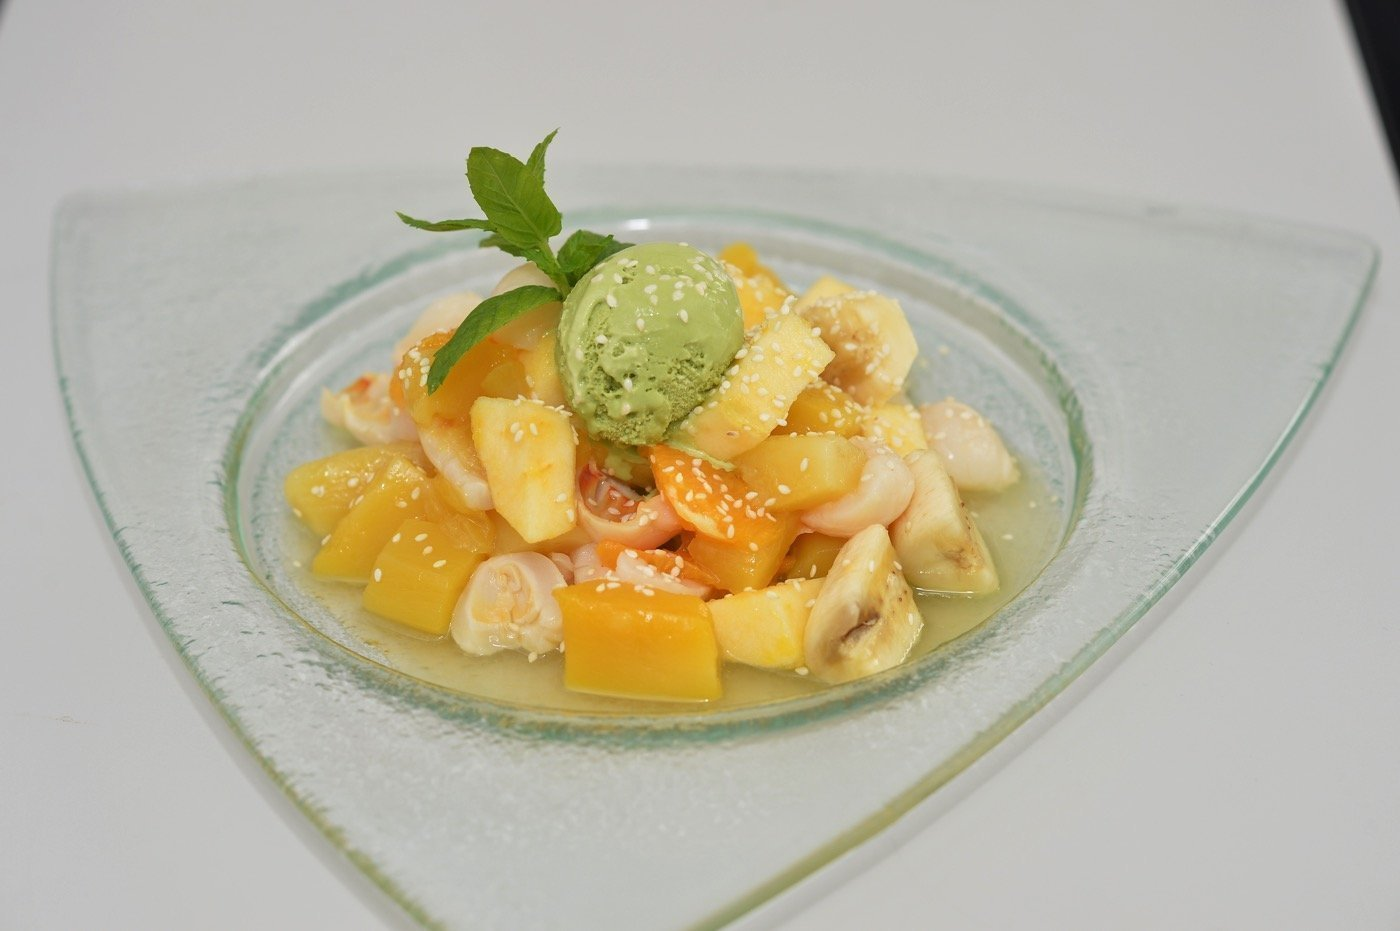 Asian fruit salad with green tea ice cream and ground sesame seeds